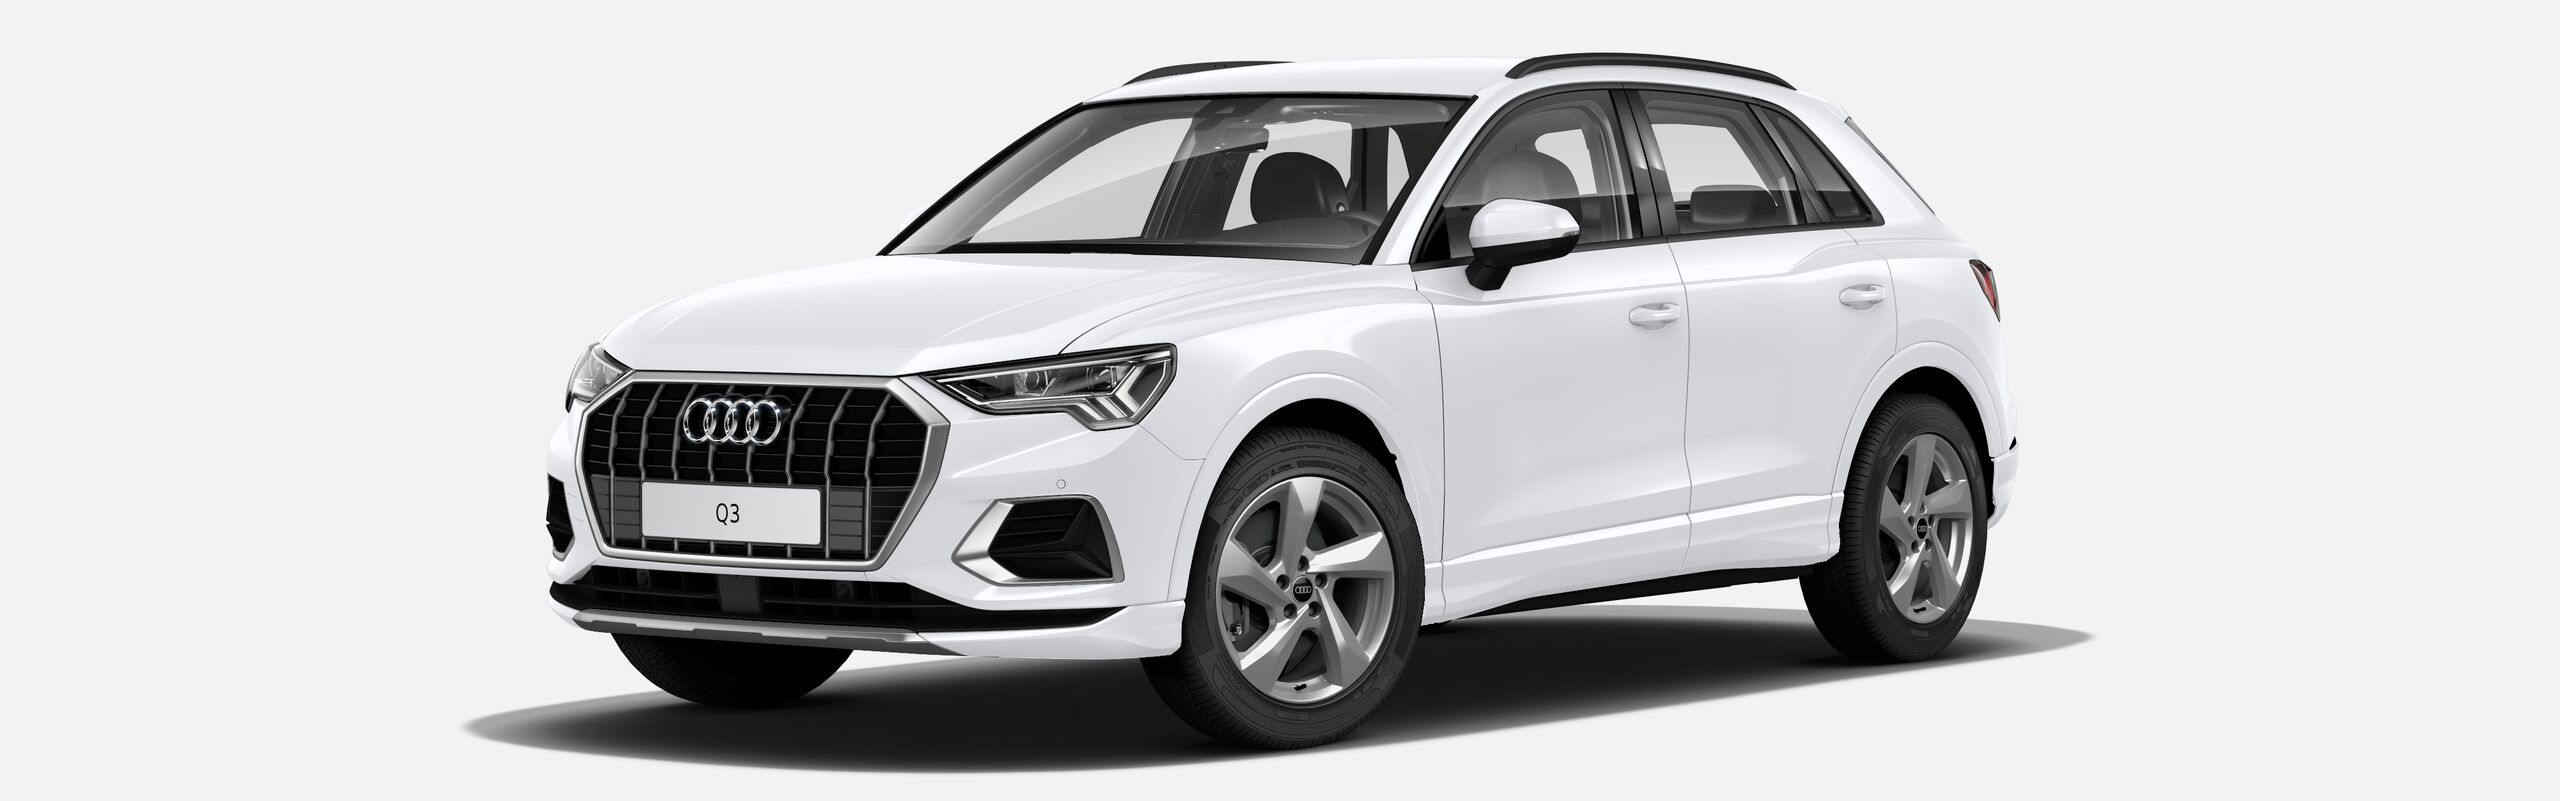 Q3 Advanced 35 TFSI / 150 CP/110 kW / 1.5l / S tronic 7 trepte / 4-usi : Audi Q3 Advanced